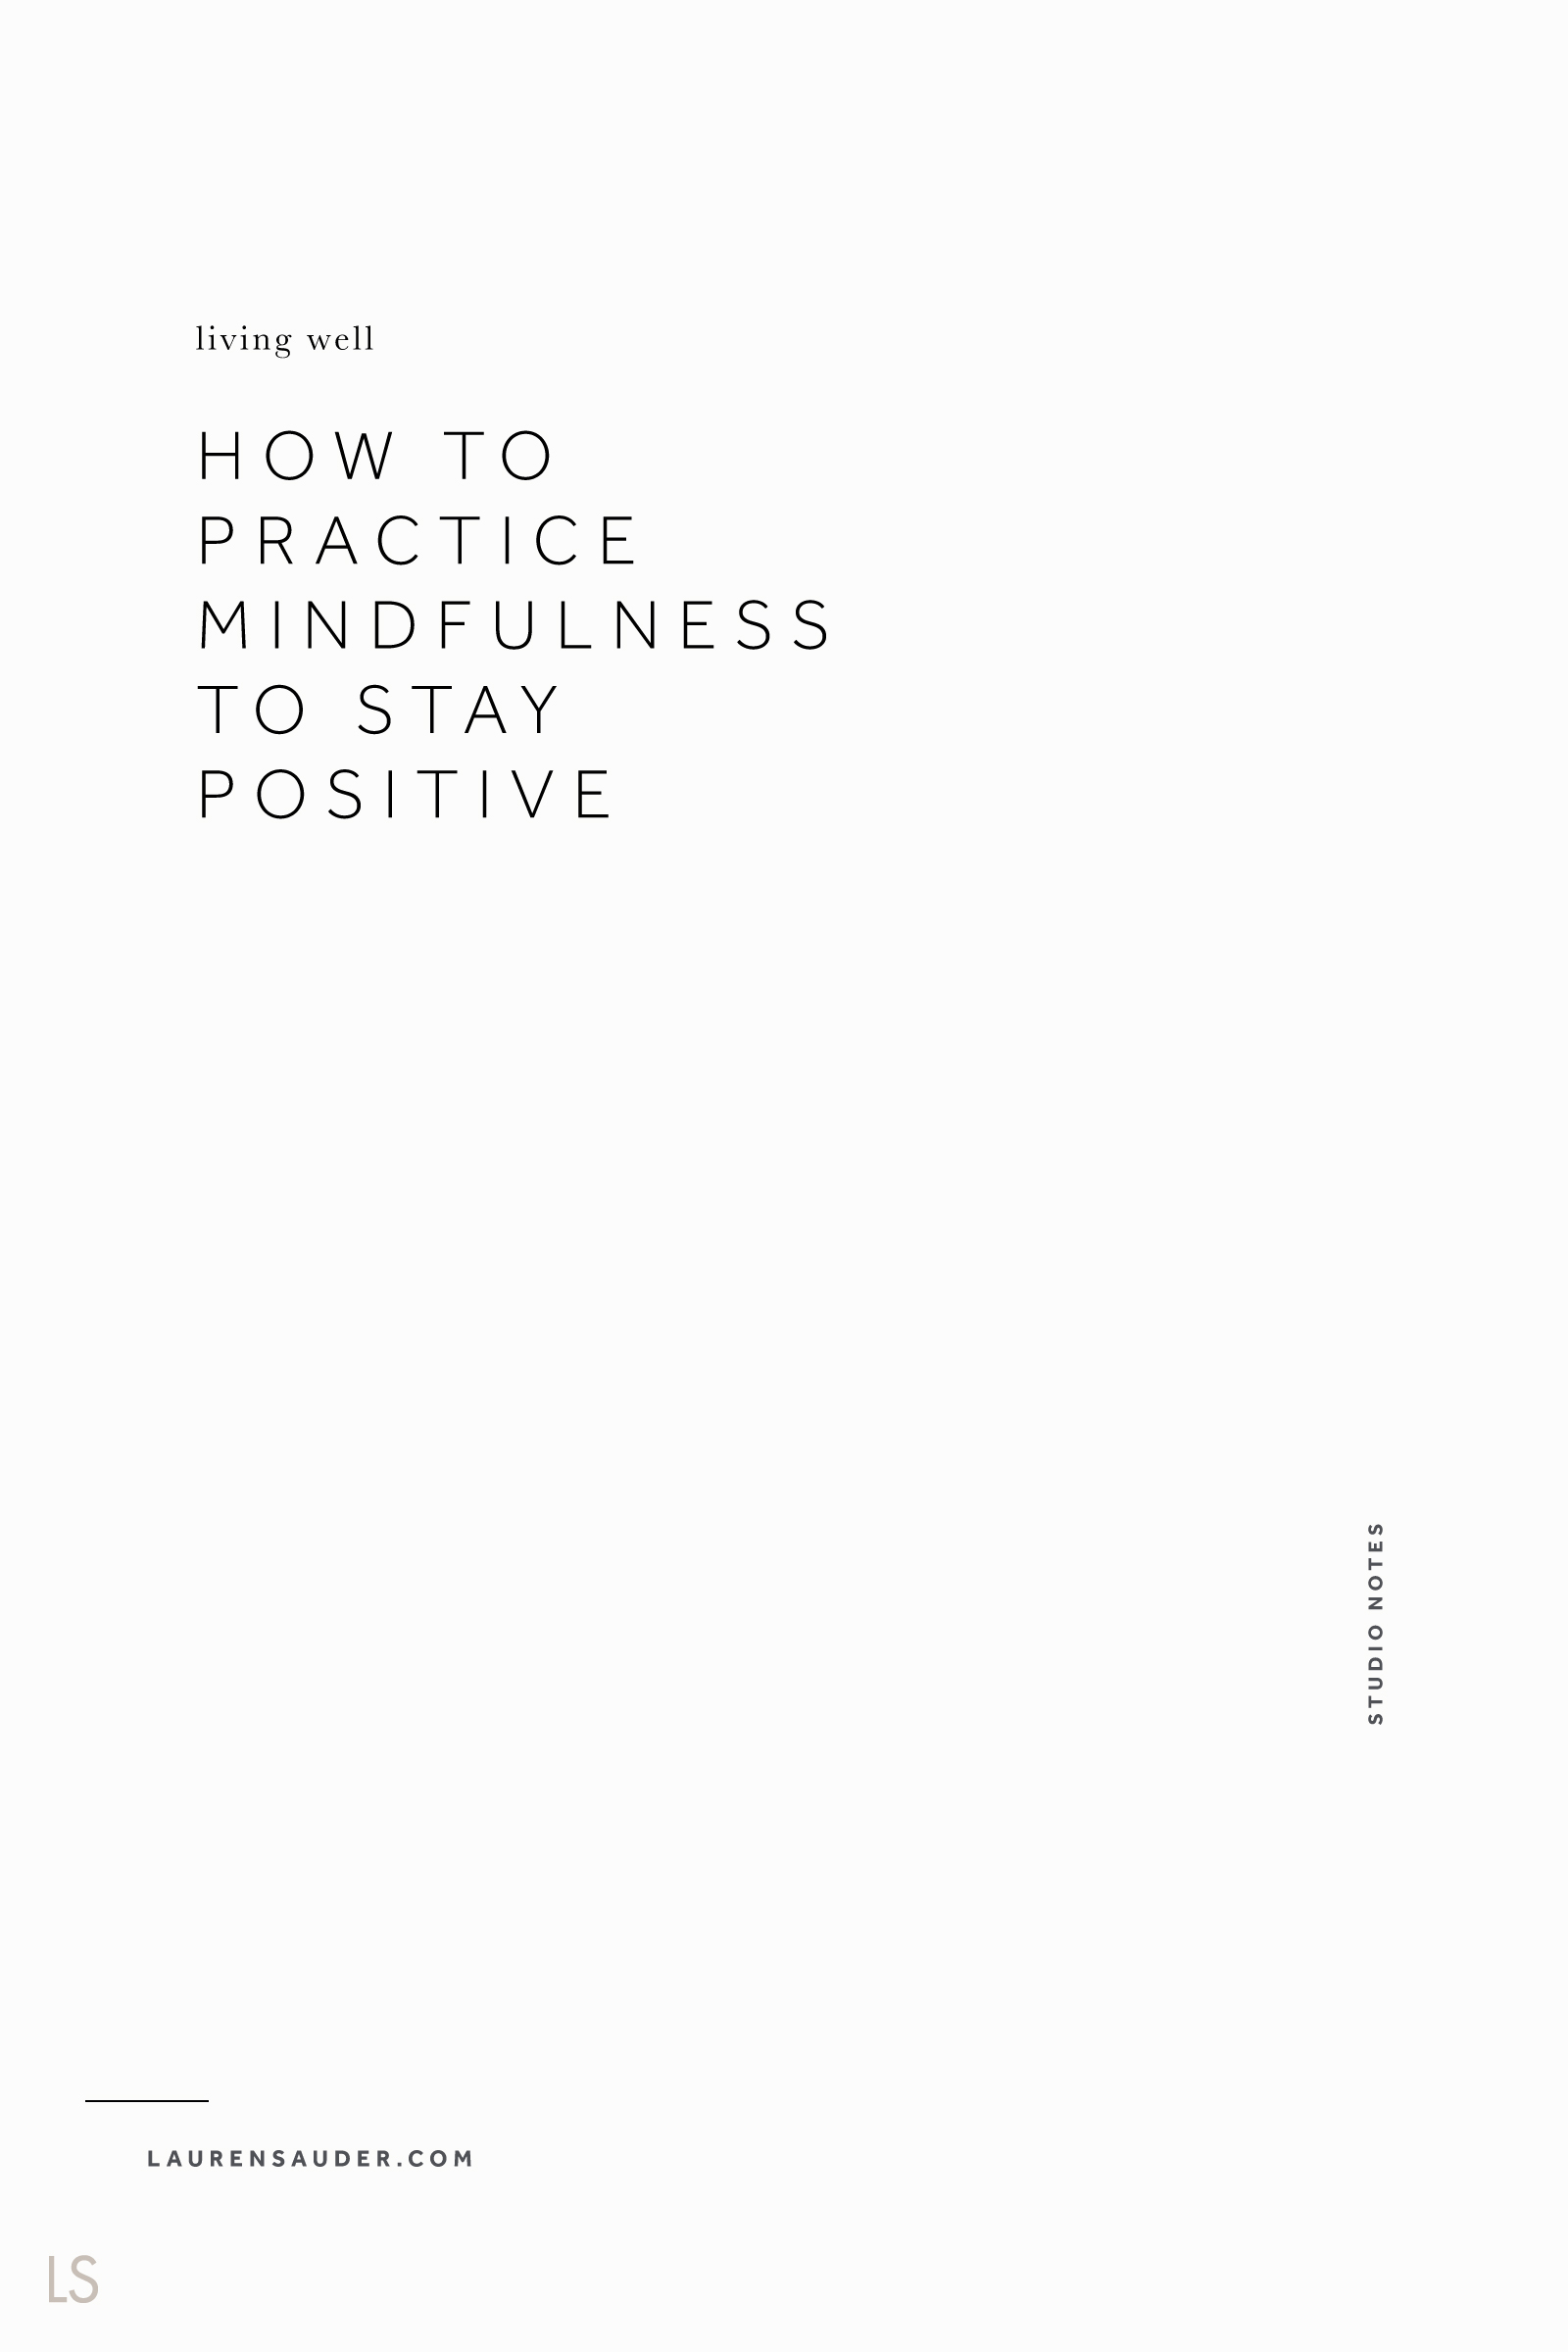 How to Practice Mindfulness to Stay Positive - Lauren Sauder #mindfulness #positivity mindful meditation, personal life, professional life, career advice, career help, power of now